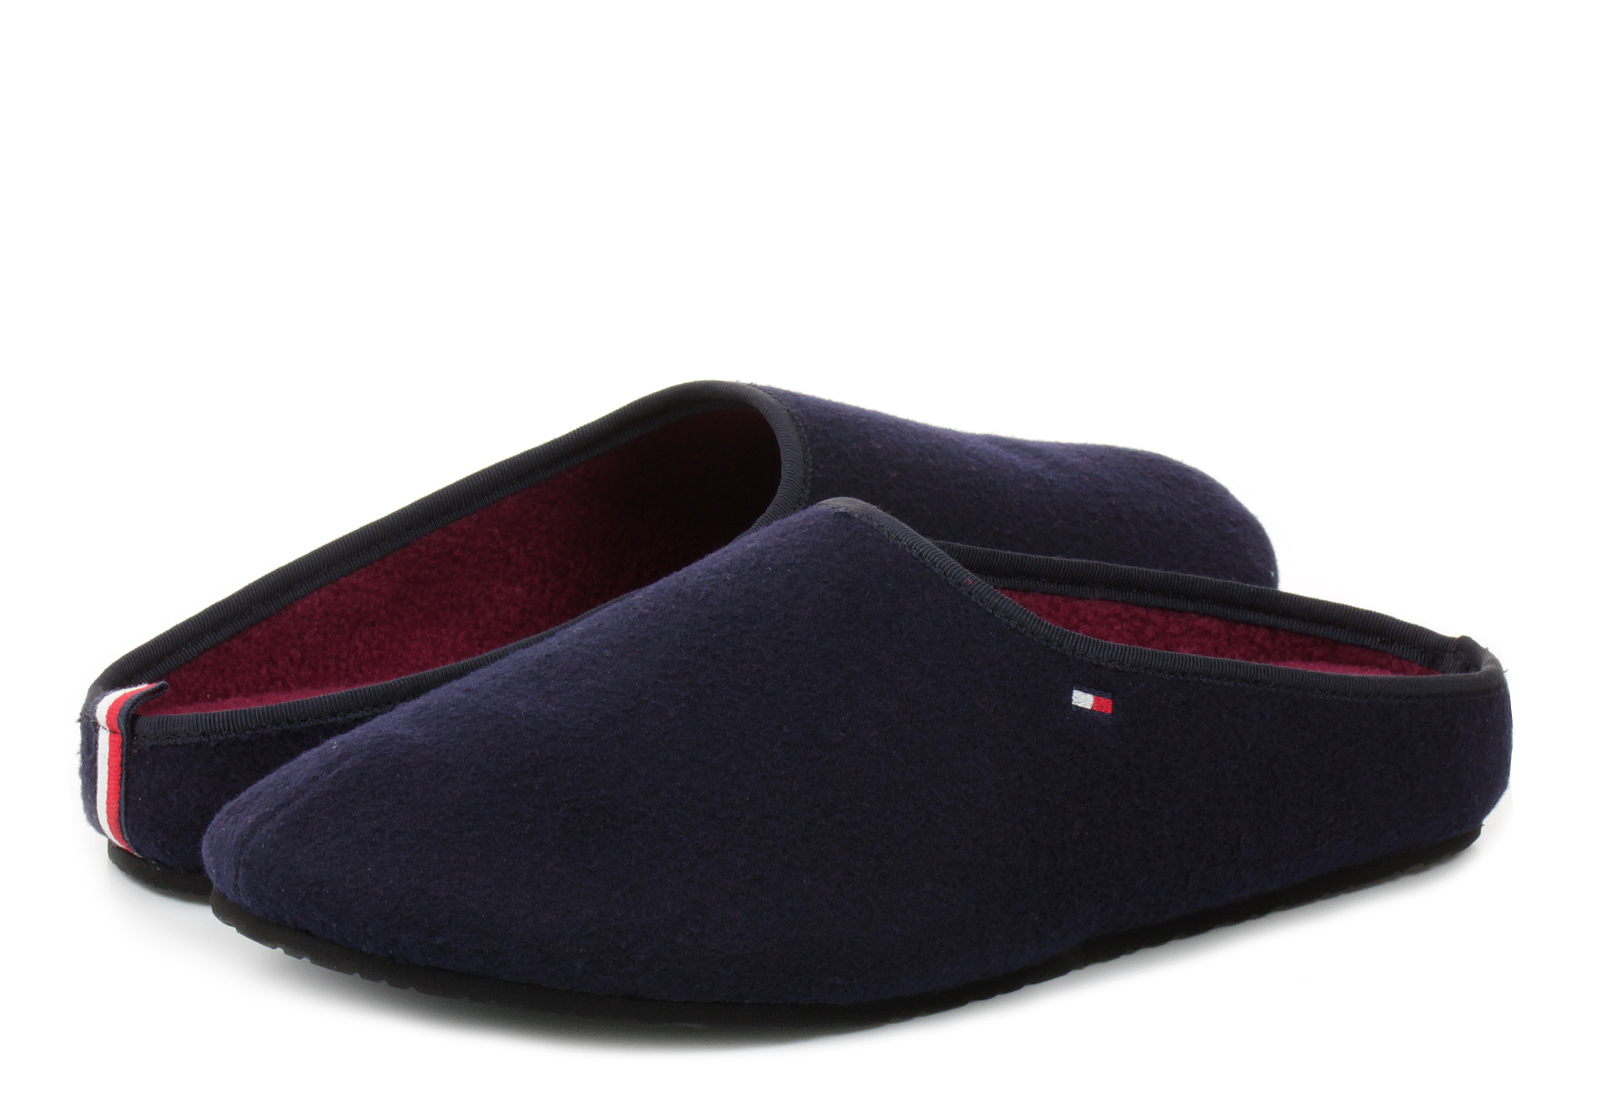 tommy hilfiger slippers daffy 1d1 17f 0944 403 online shop for sneakers  shoes and boots c6b5f958e7